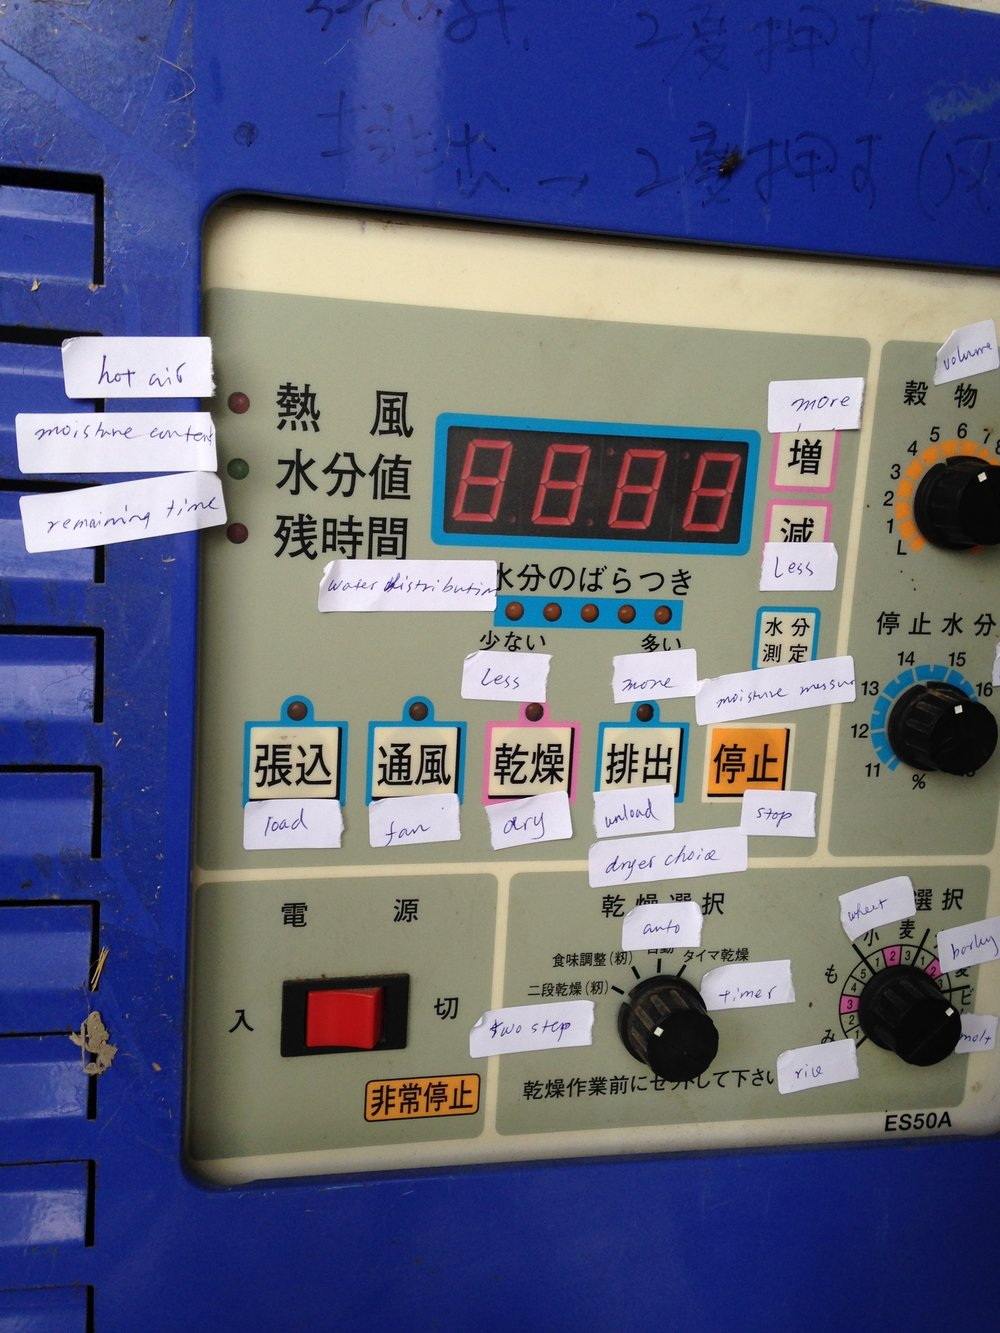 trying to make sense of the rice dryer control panel...